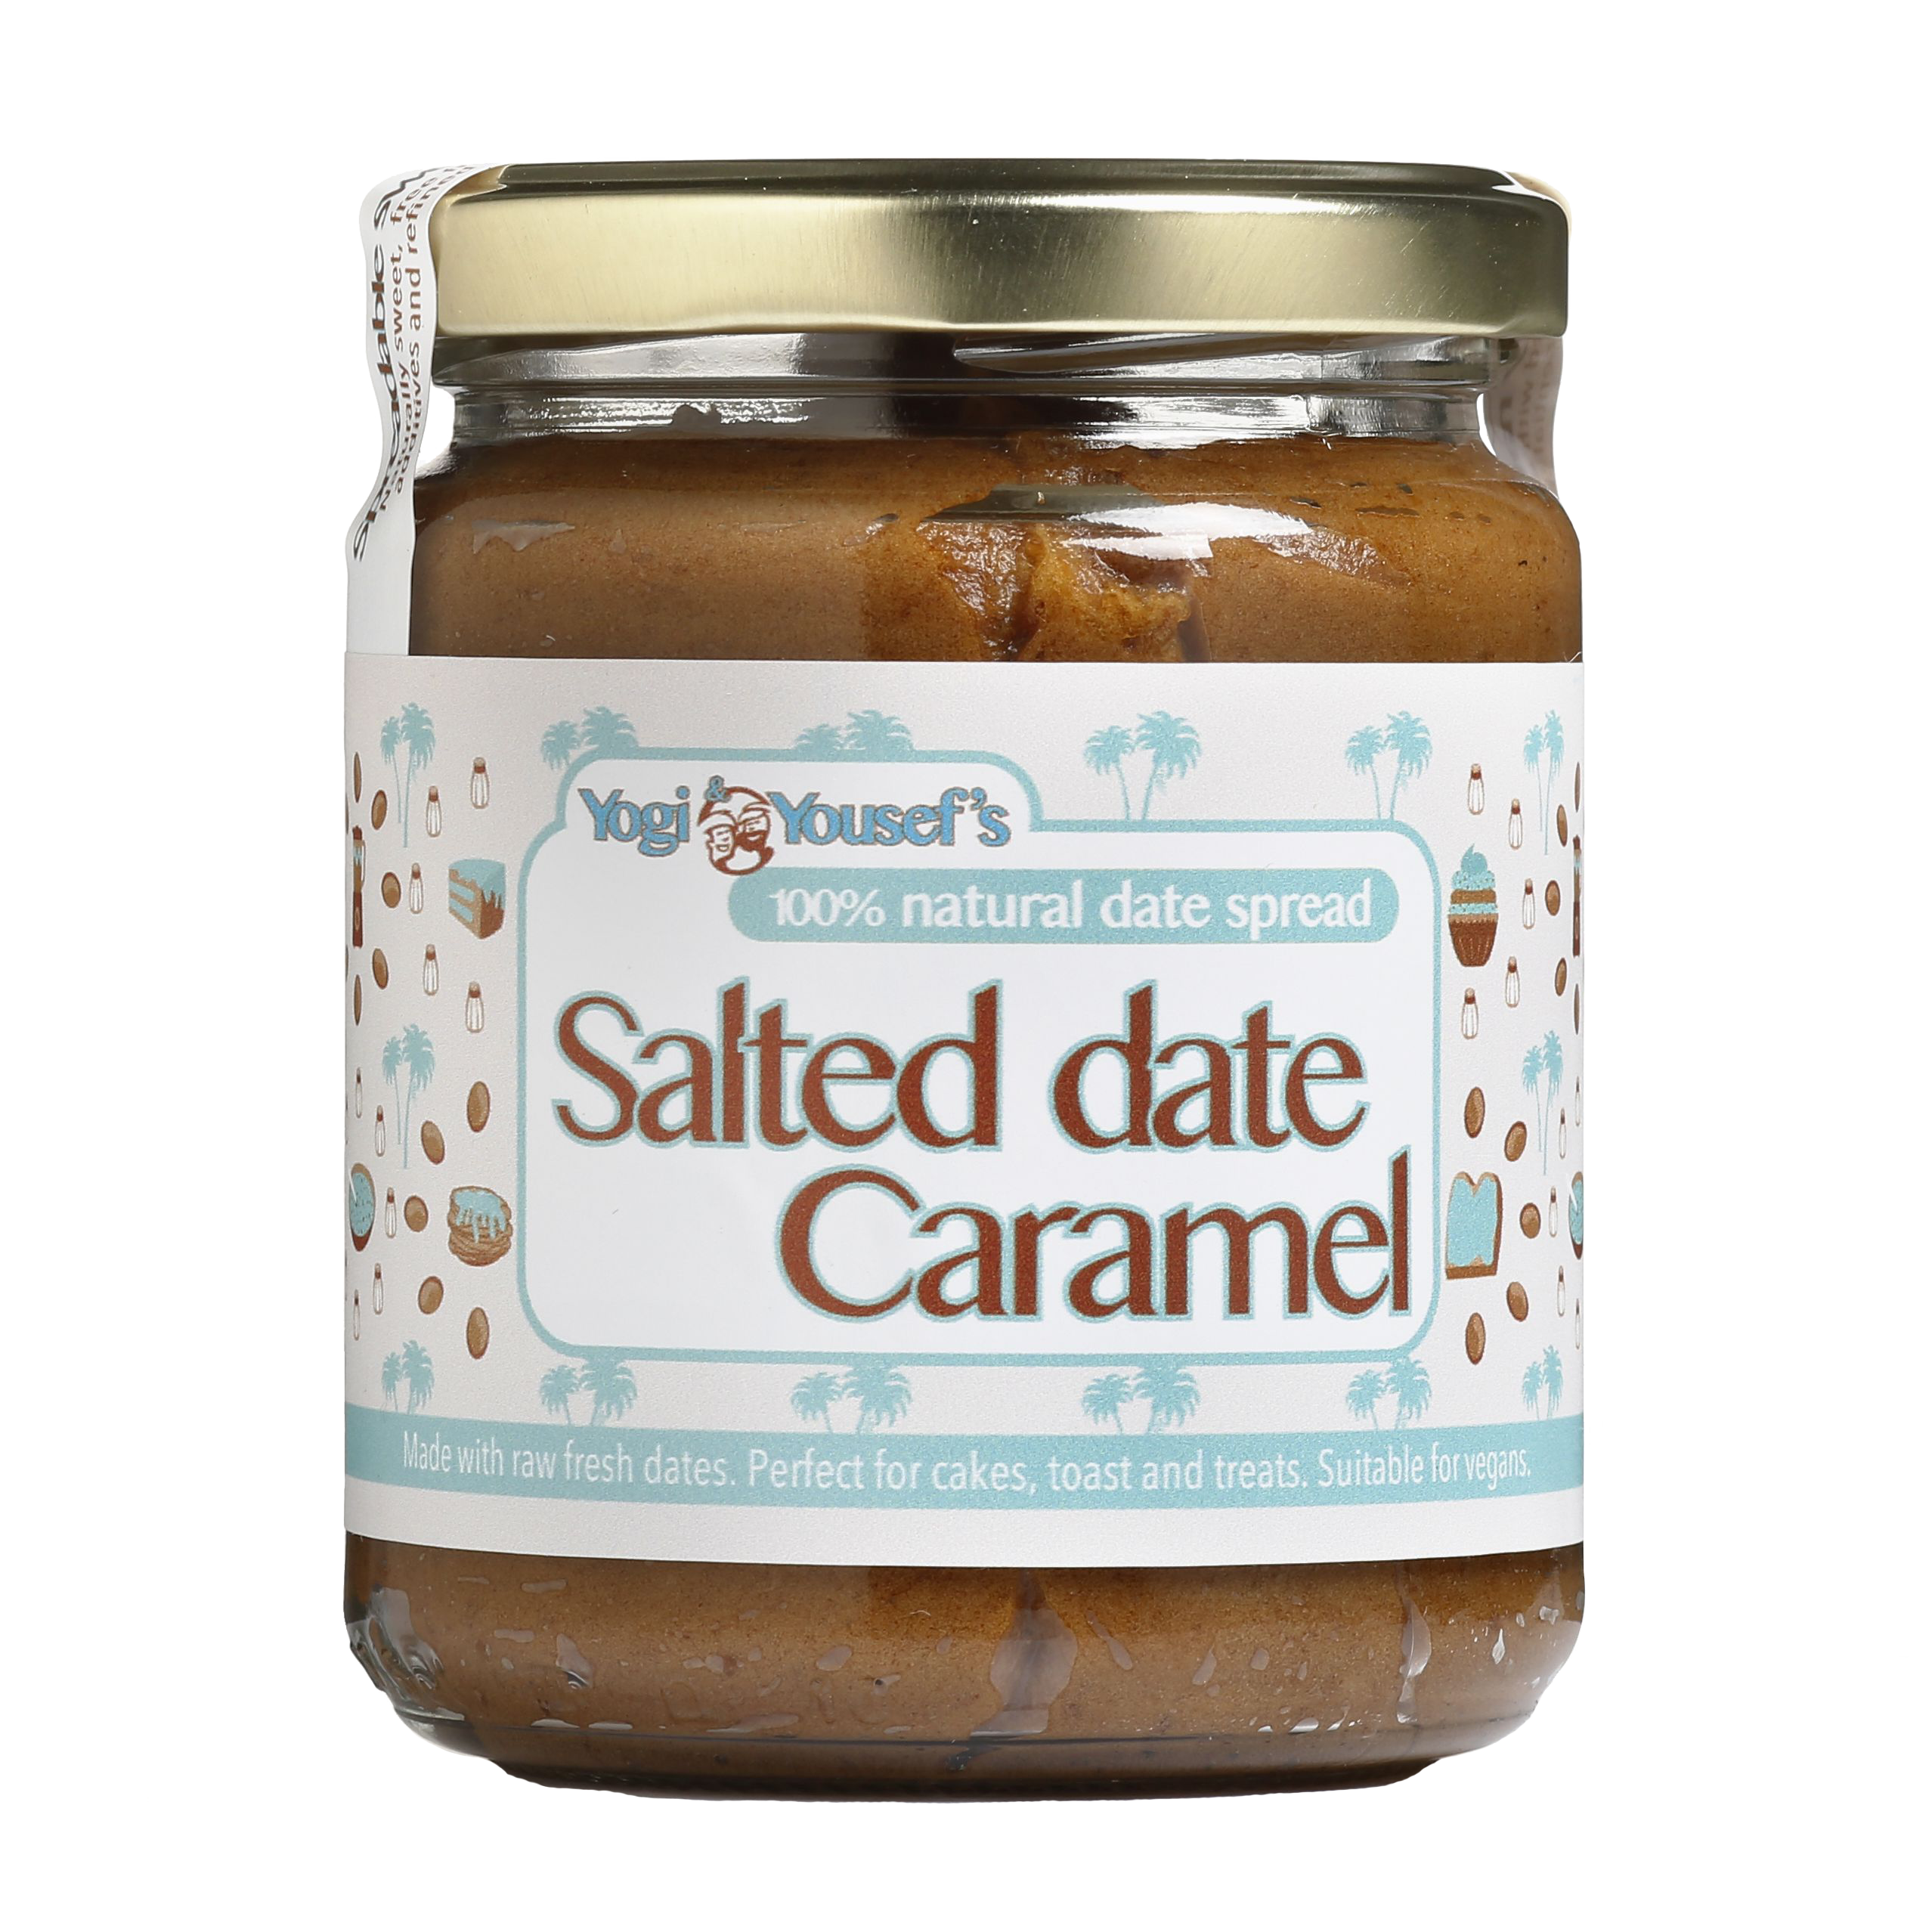 Dadelspread Salted date Caramel - Yogi & Yousef - product ontwerp - Dots & Lines